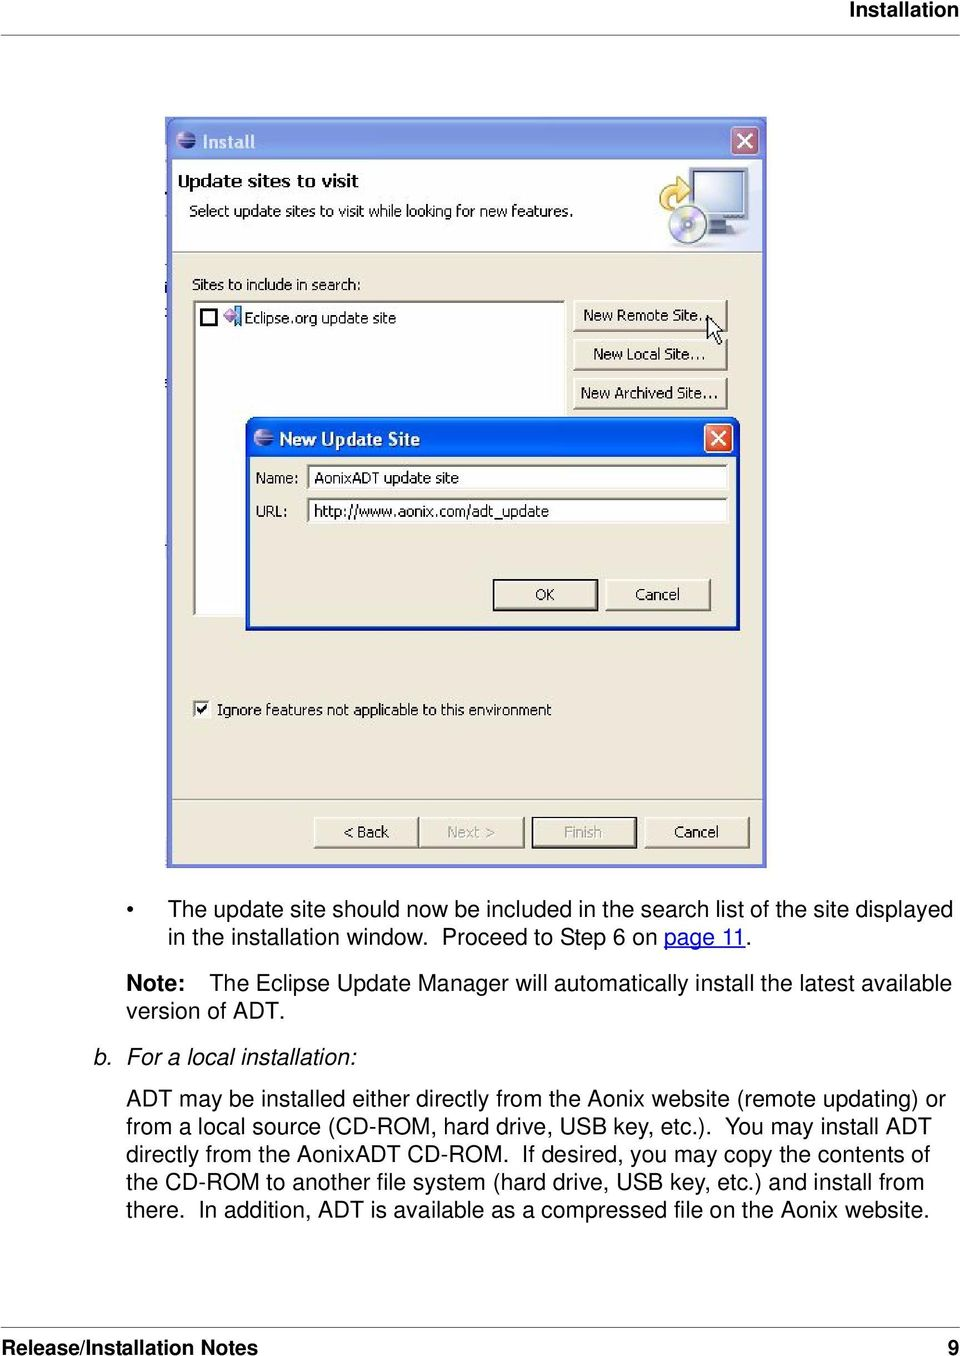 For a local installation: ADT may be installed either directly from the Aonix website (remote updating) or from a local source (CD-ROM, hard drive, USB key, etc.). You may install ADT directly from the AonixADT CD-ROM.